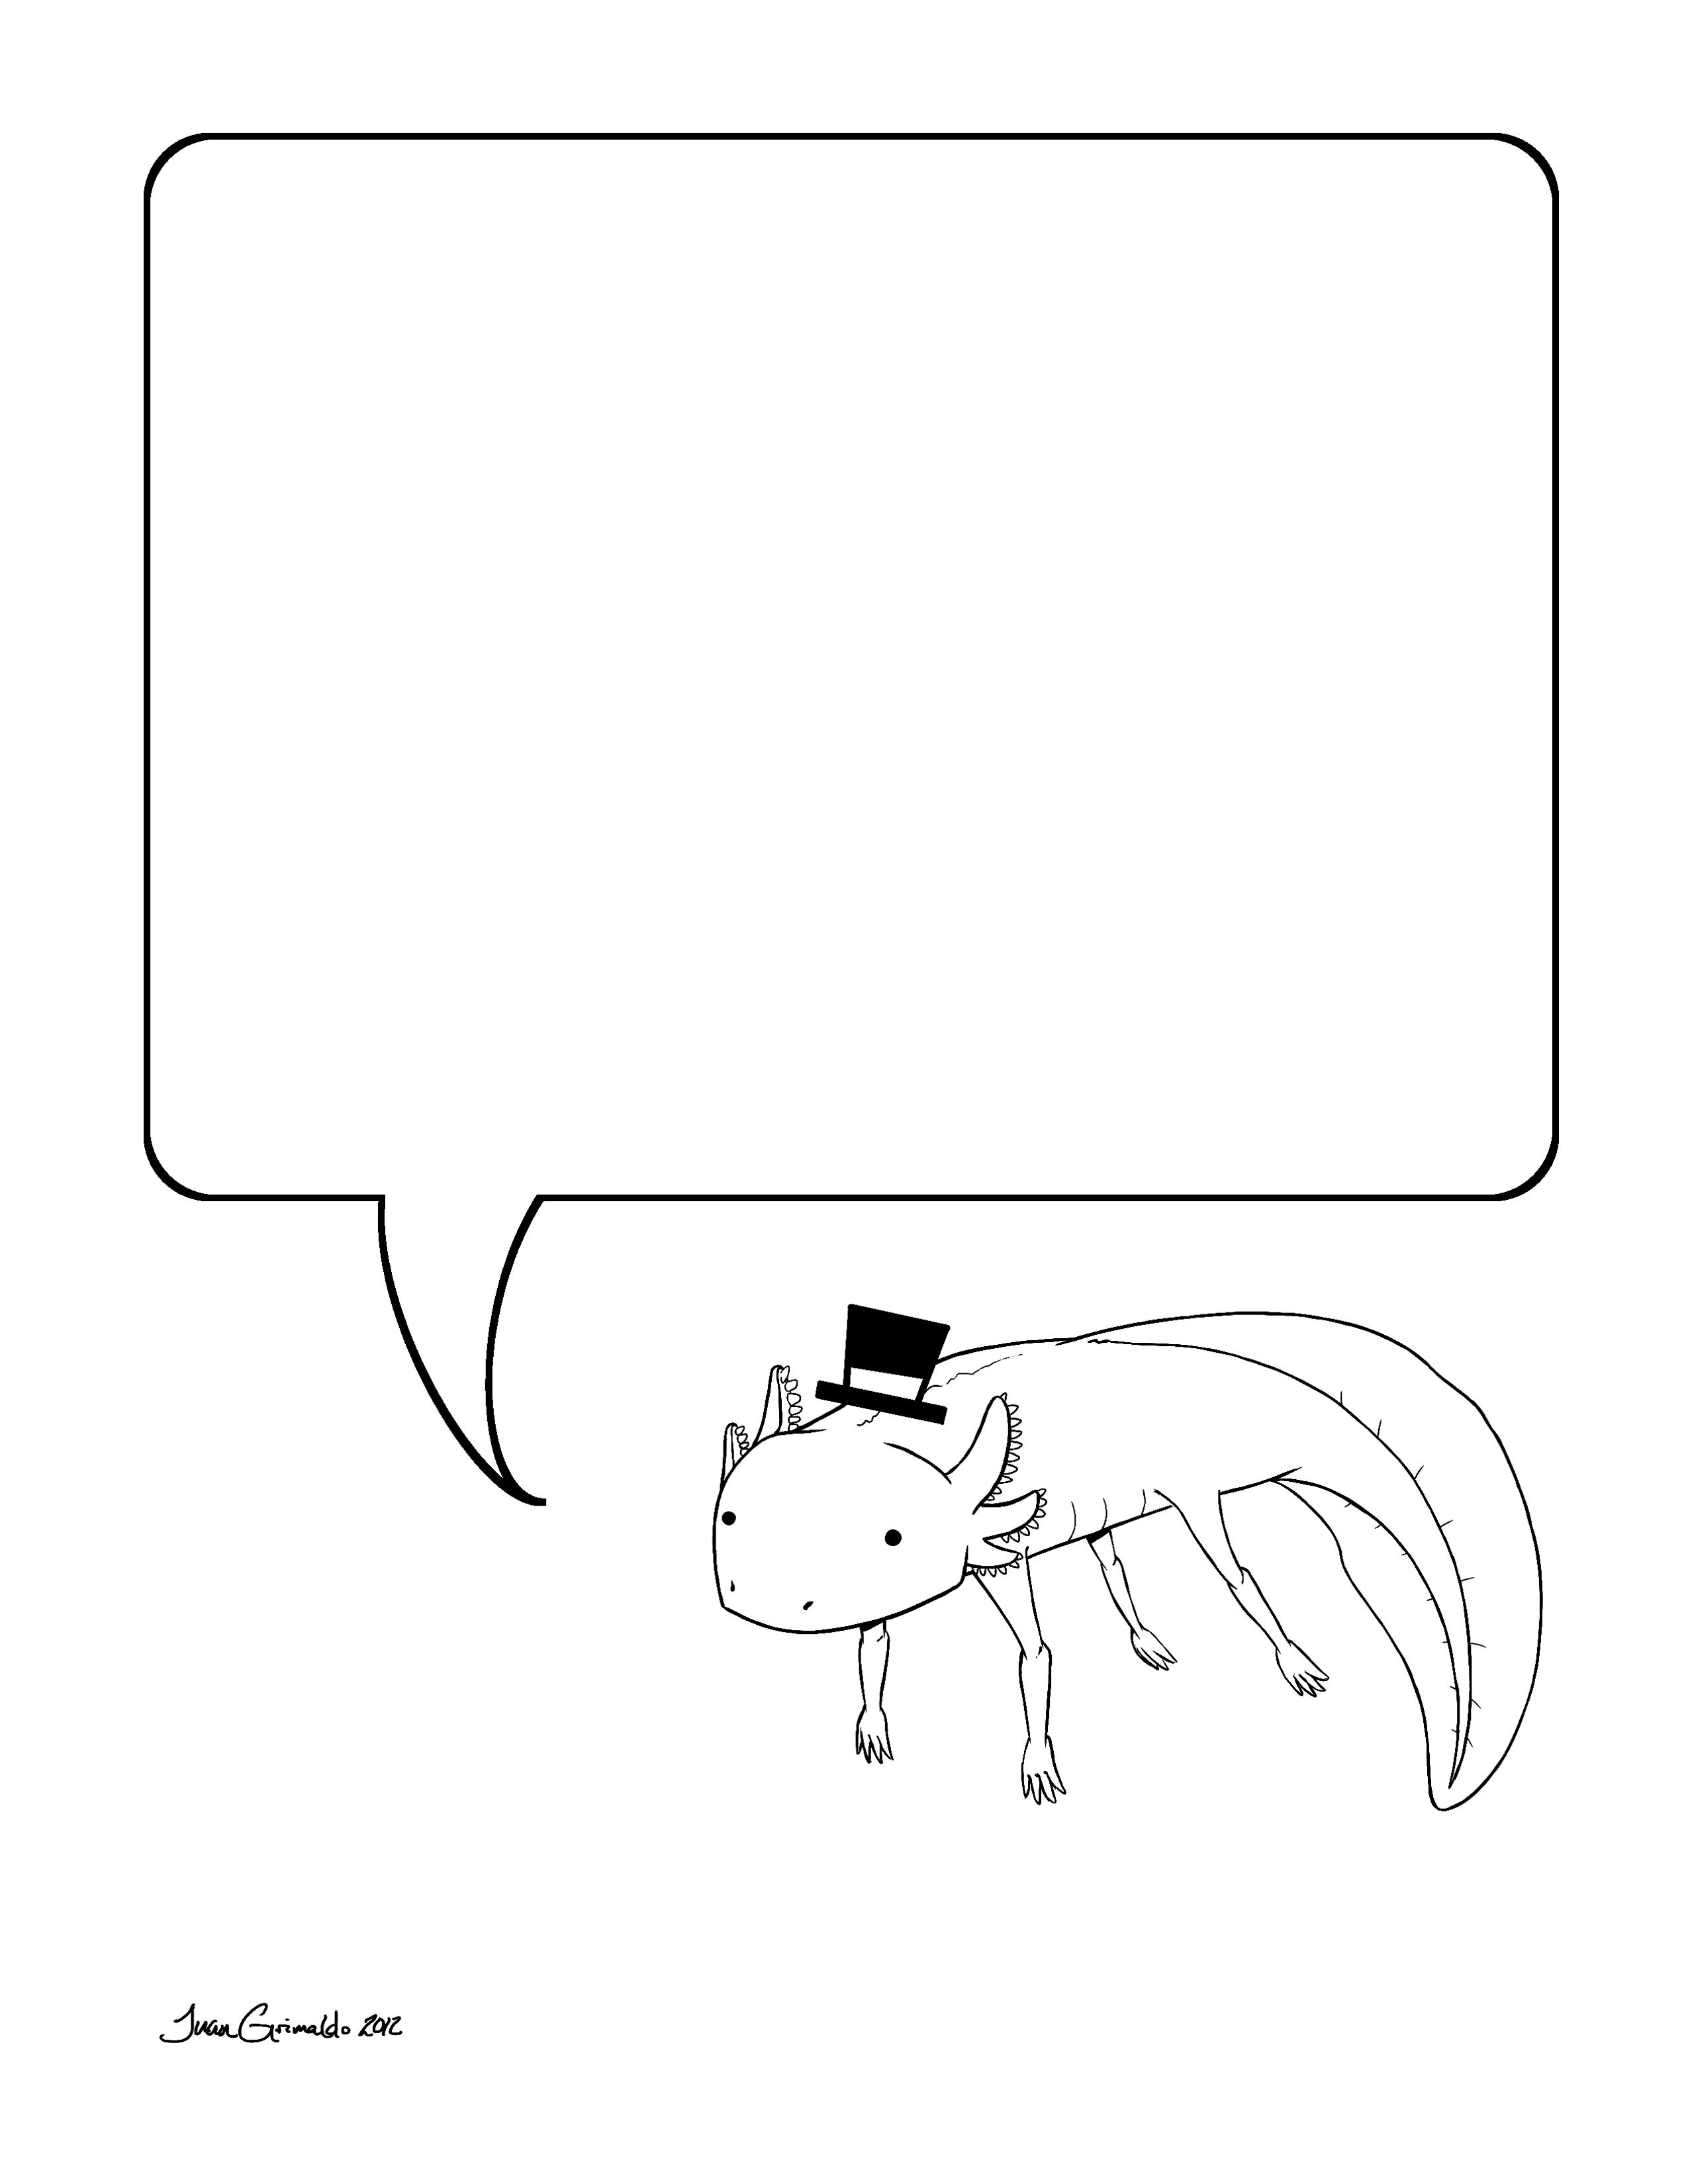 Axolotl Note Coloring Page By Grimaldo J On Deviantart Note Coloring Pages